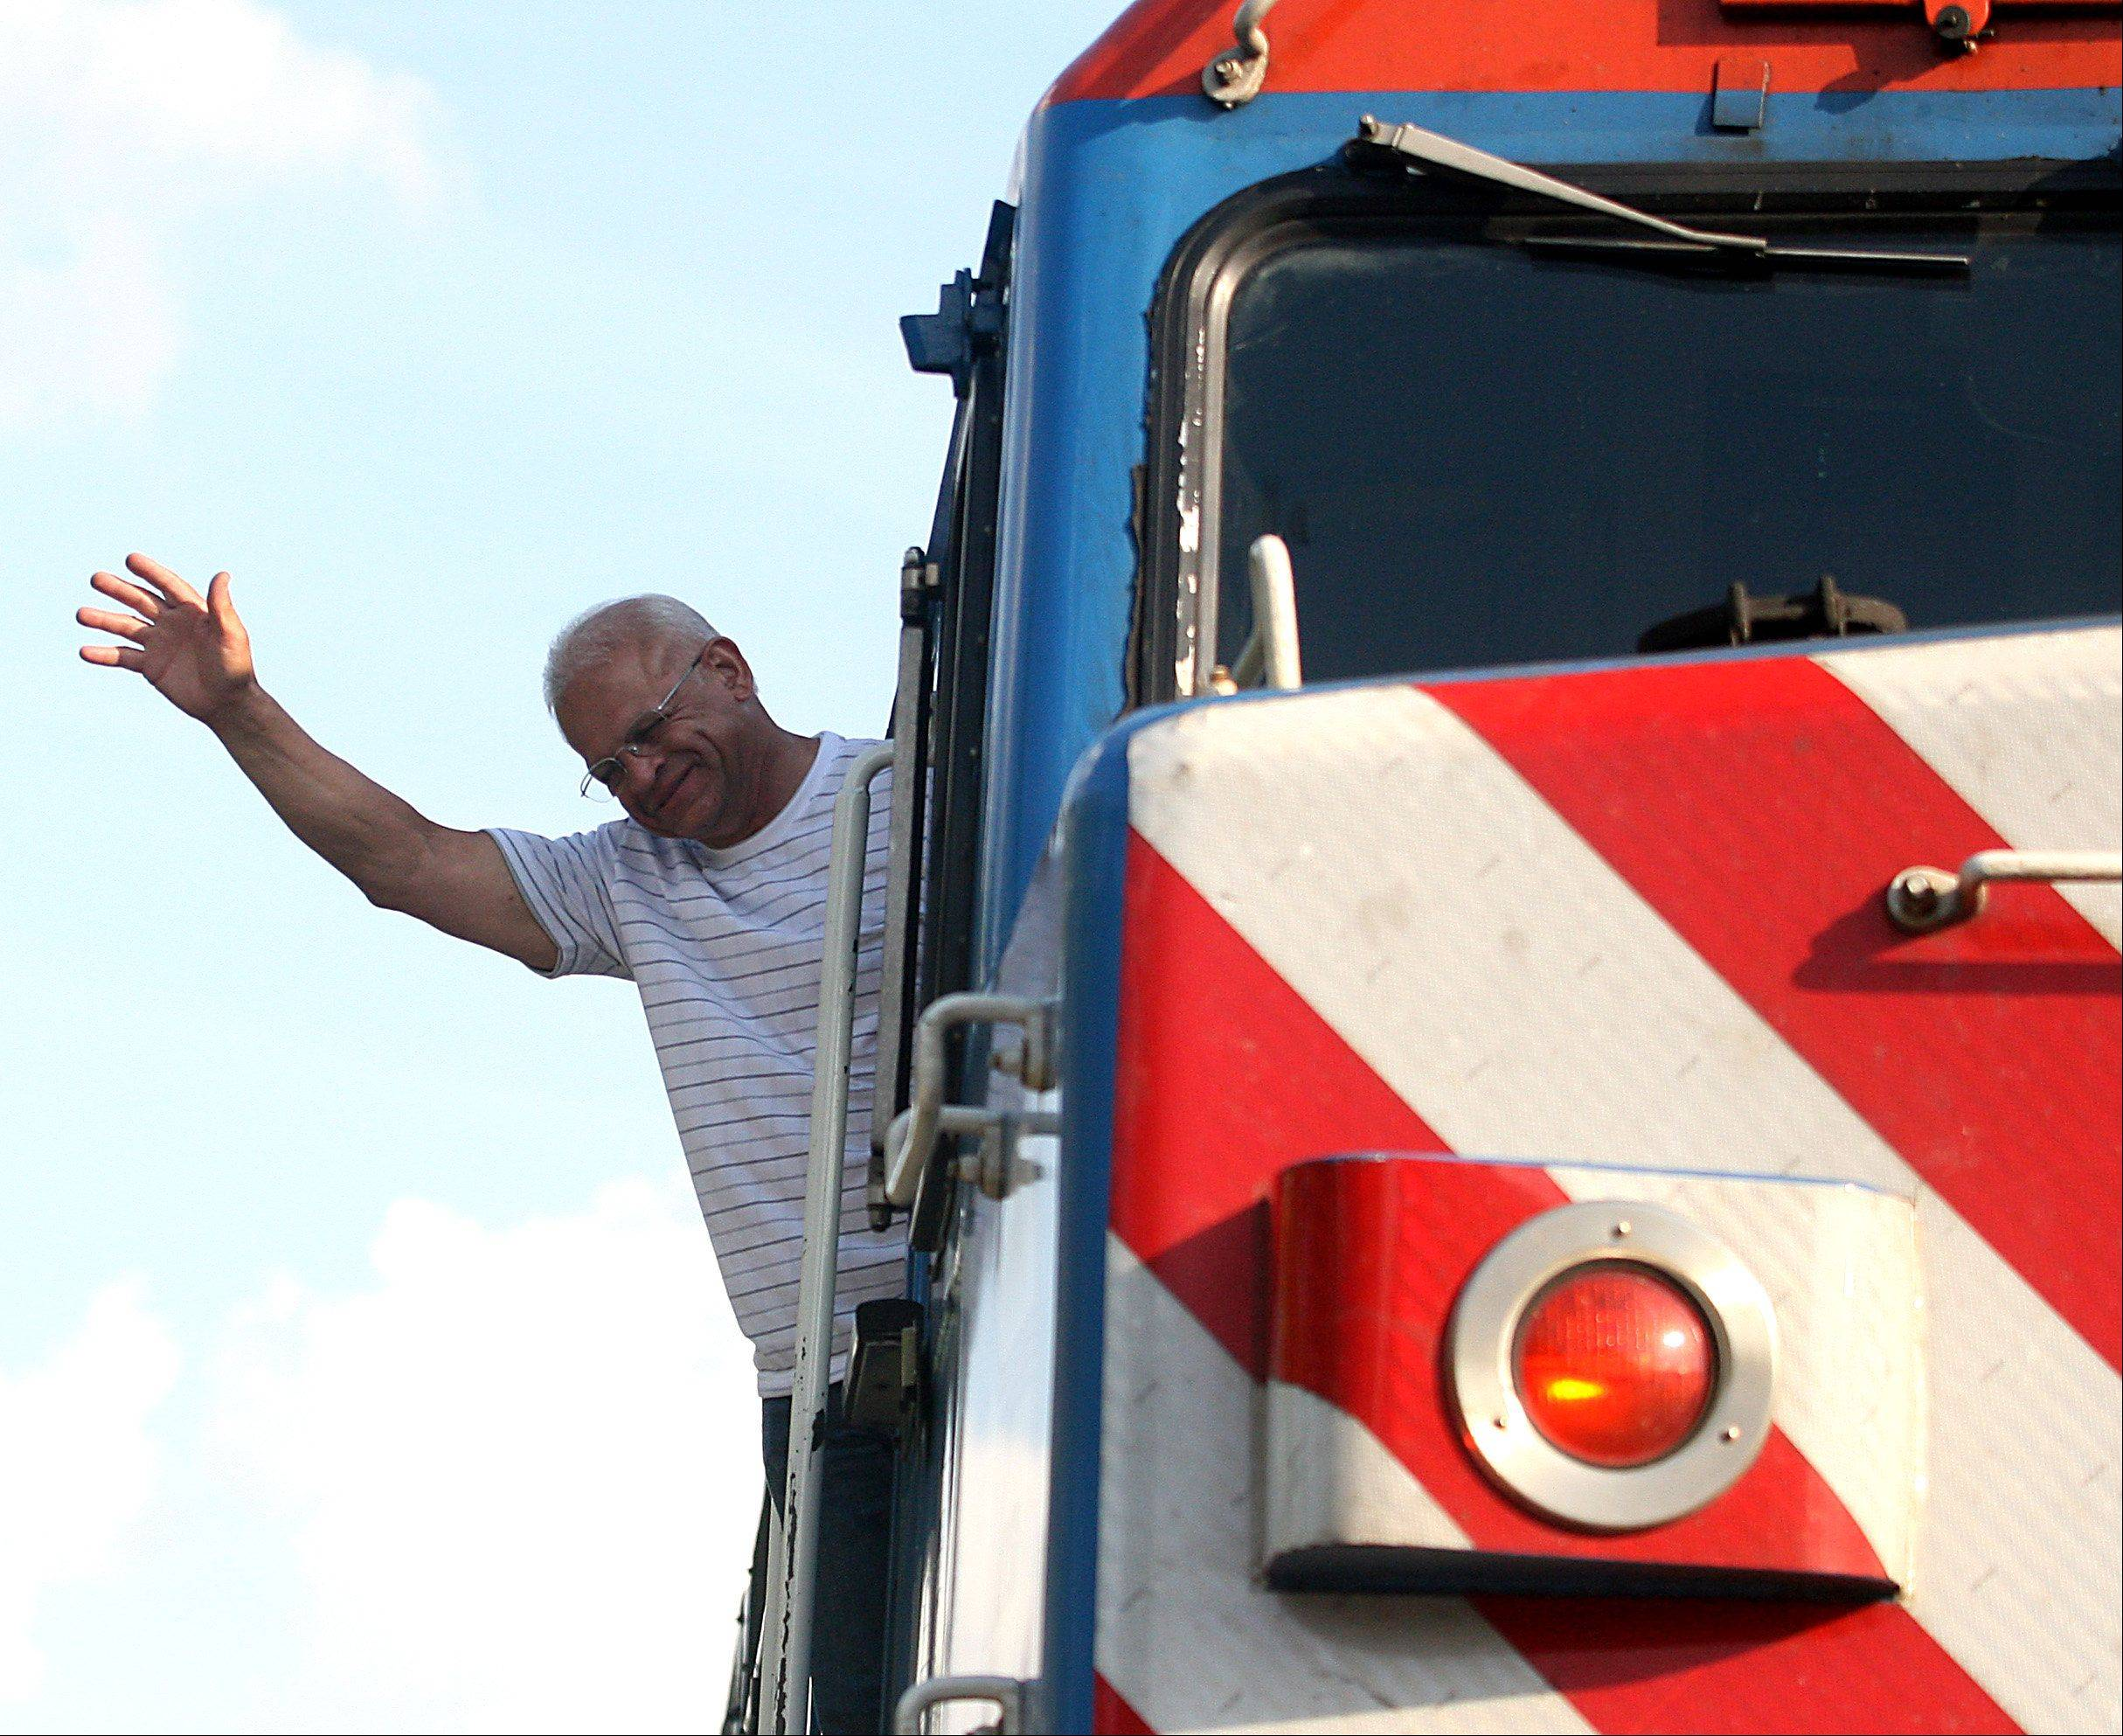 Metra engineer Hector Feliciano waves from his perch atop an engine after piloting a train for the final time upon arrival at the Chicago Street Station in Elgin on Tuesday evening.